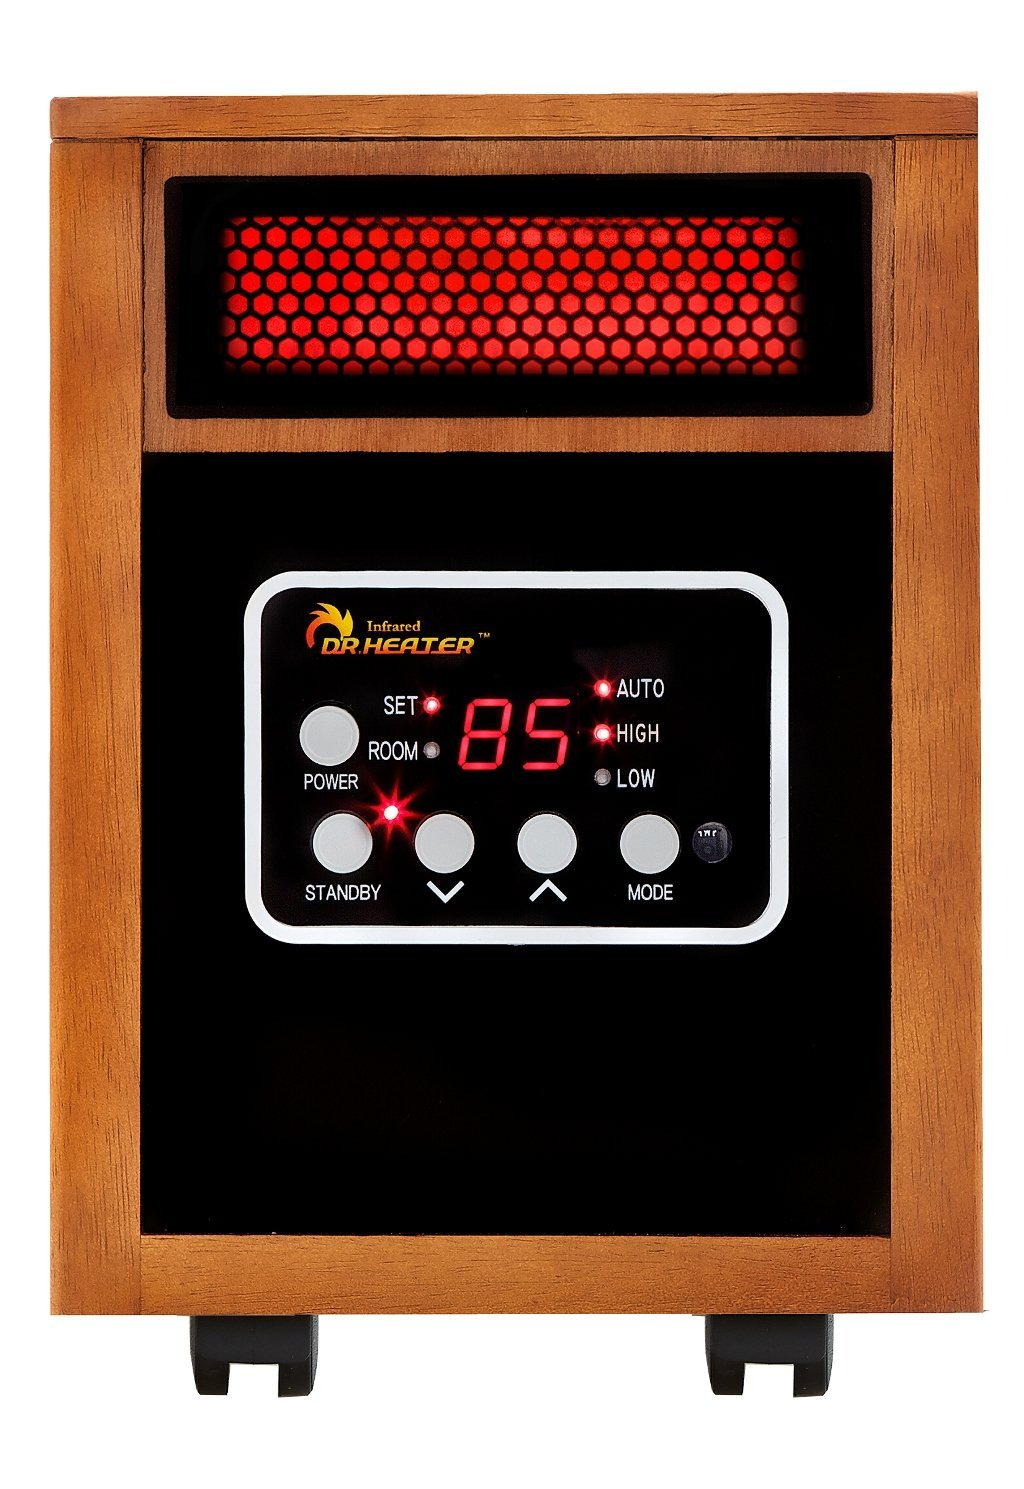 Dr Infrared Heater Portable Space Heater, 1500-Watt Renewed